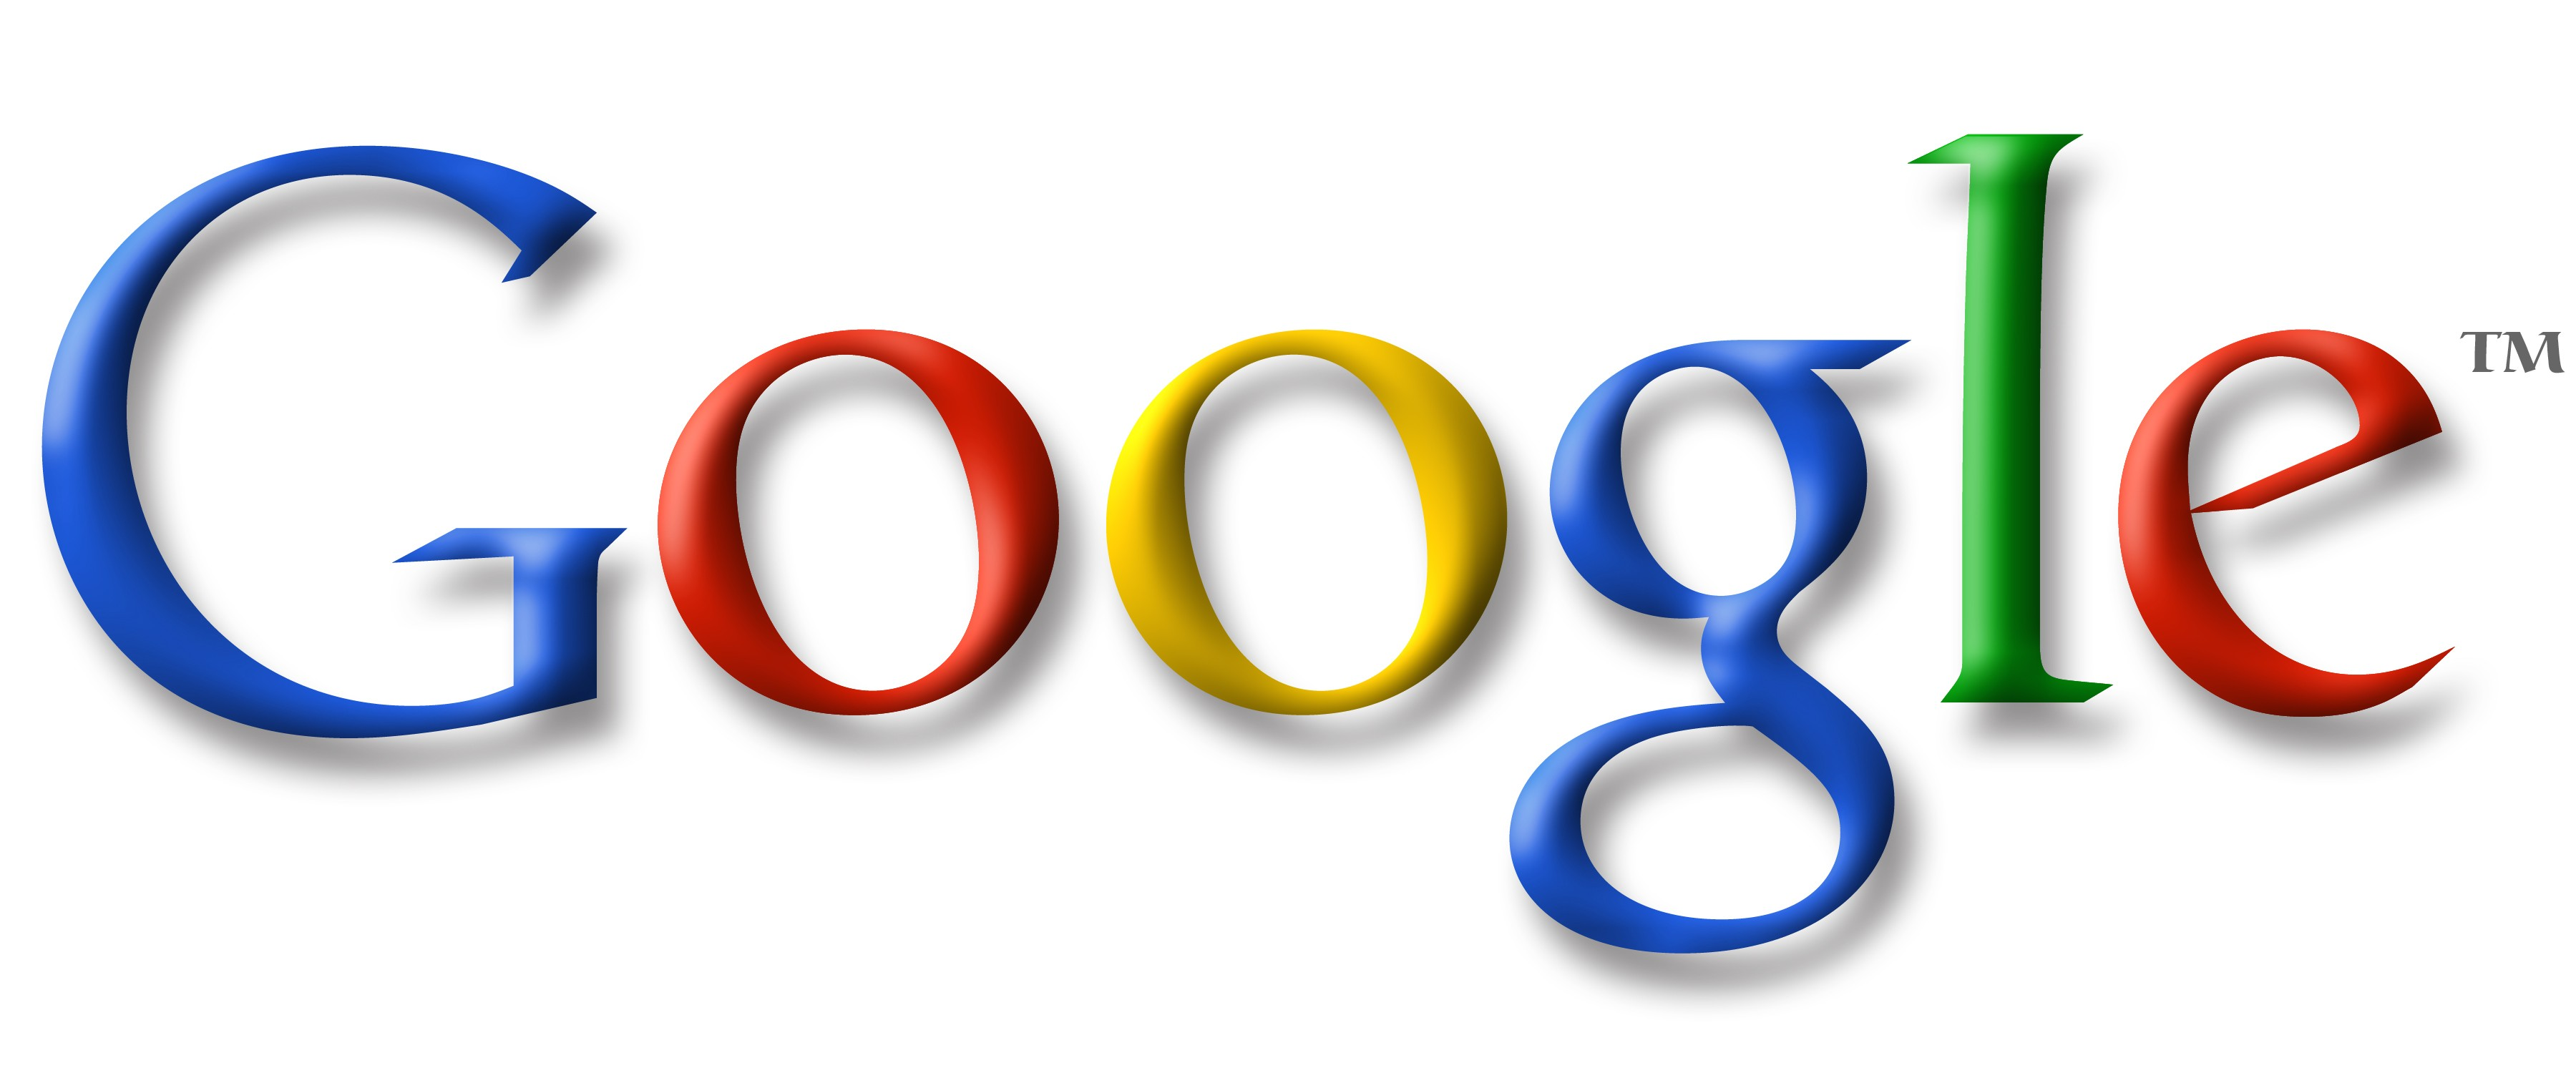 Google website logo